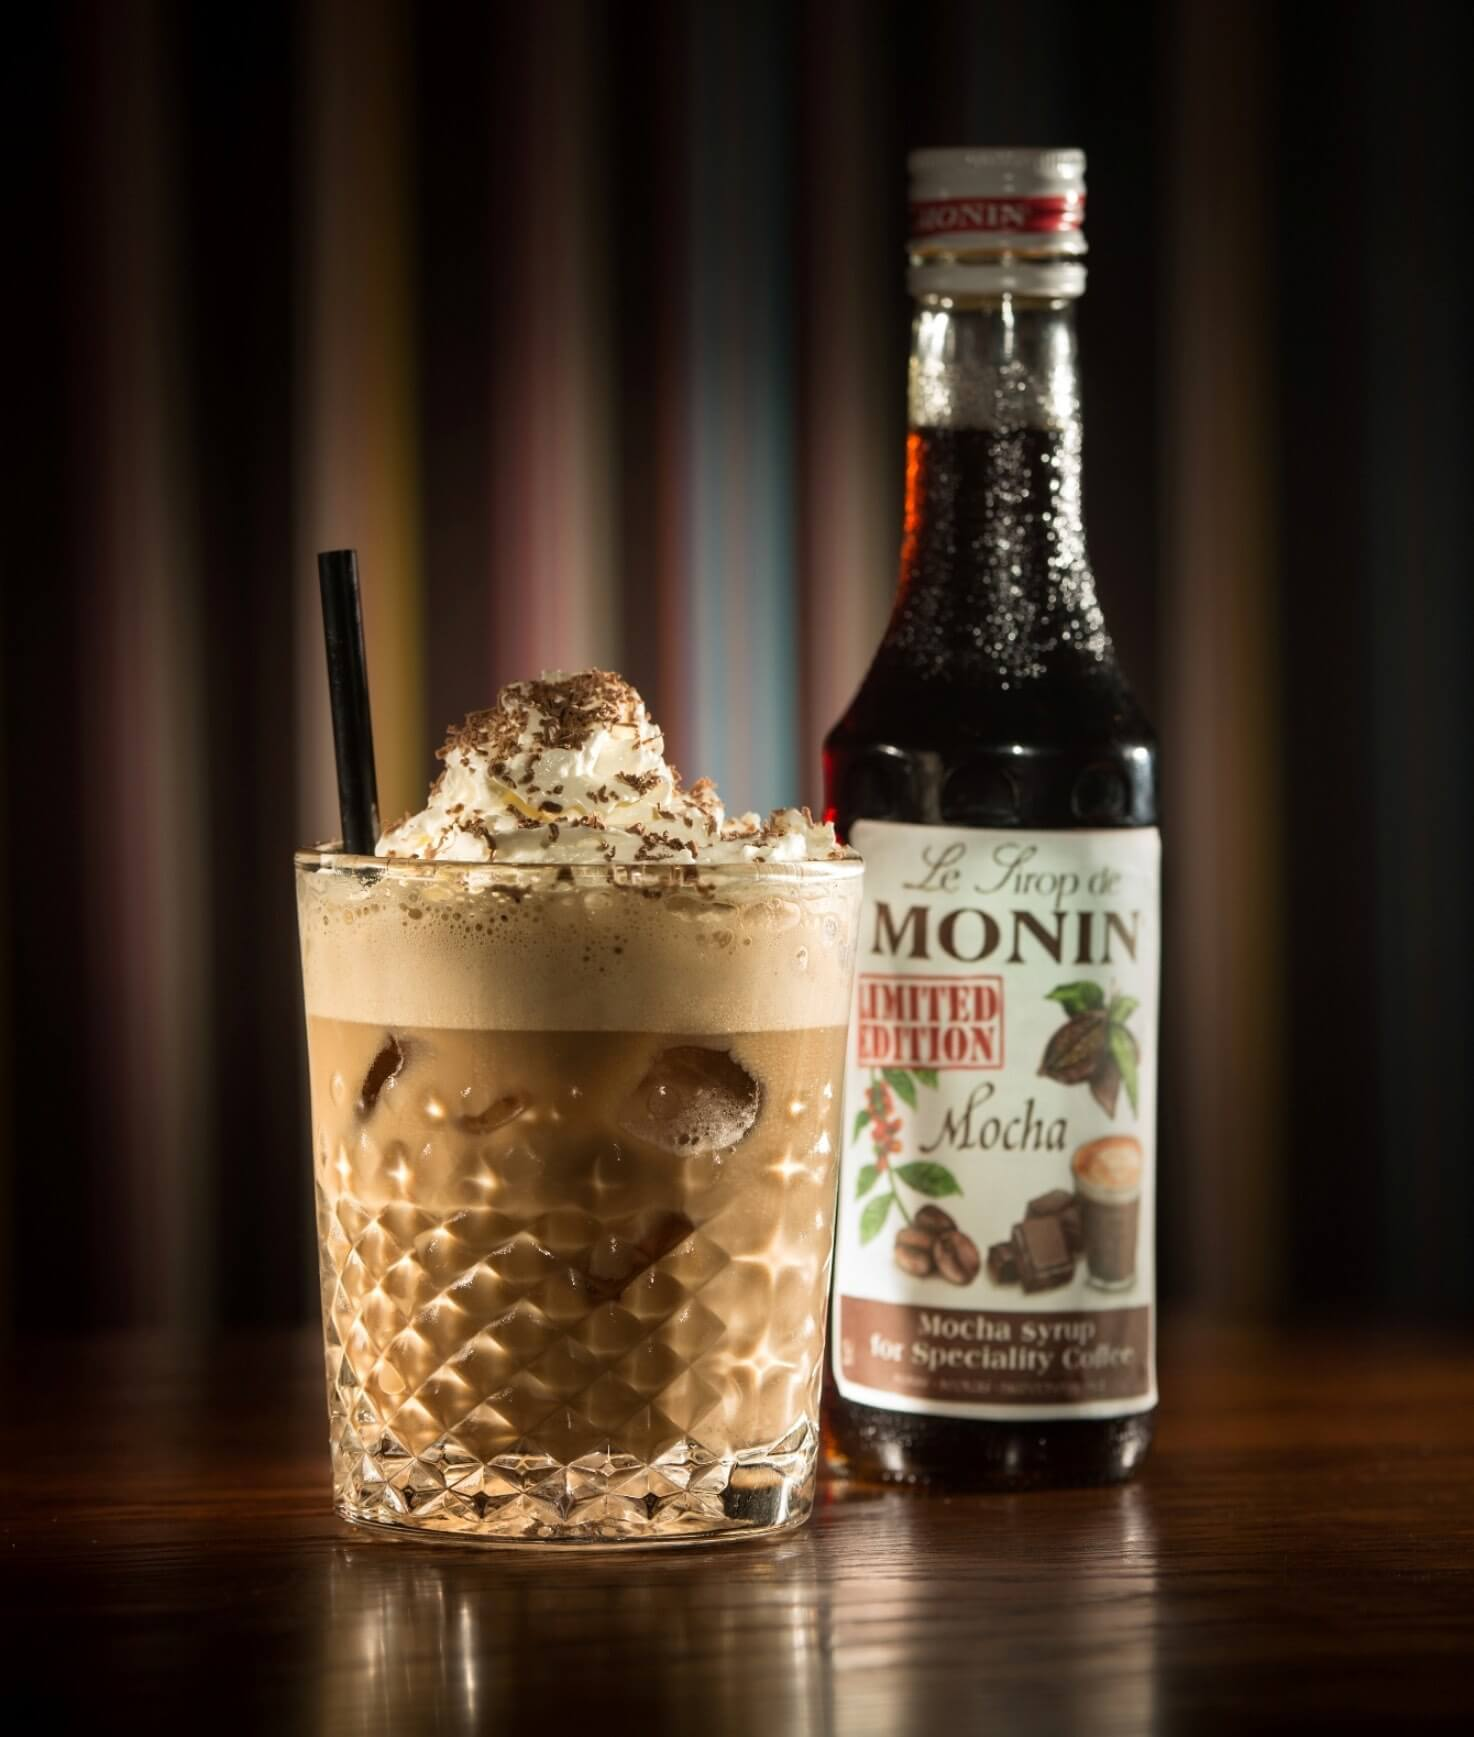 monin-mocha-dream